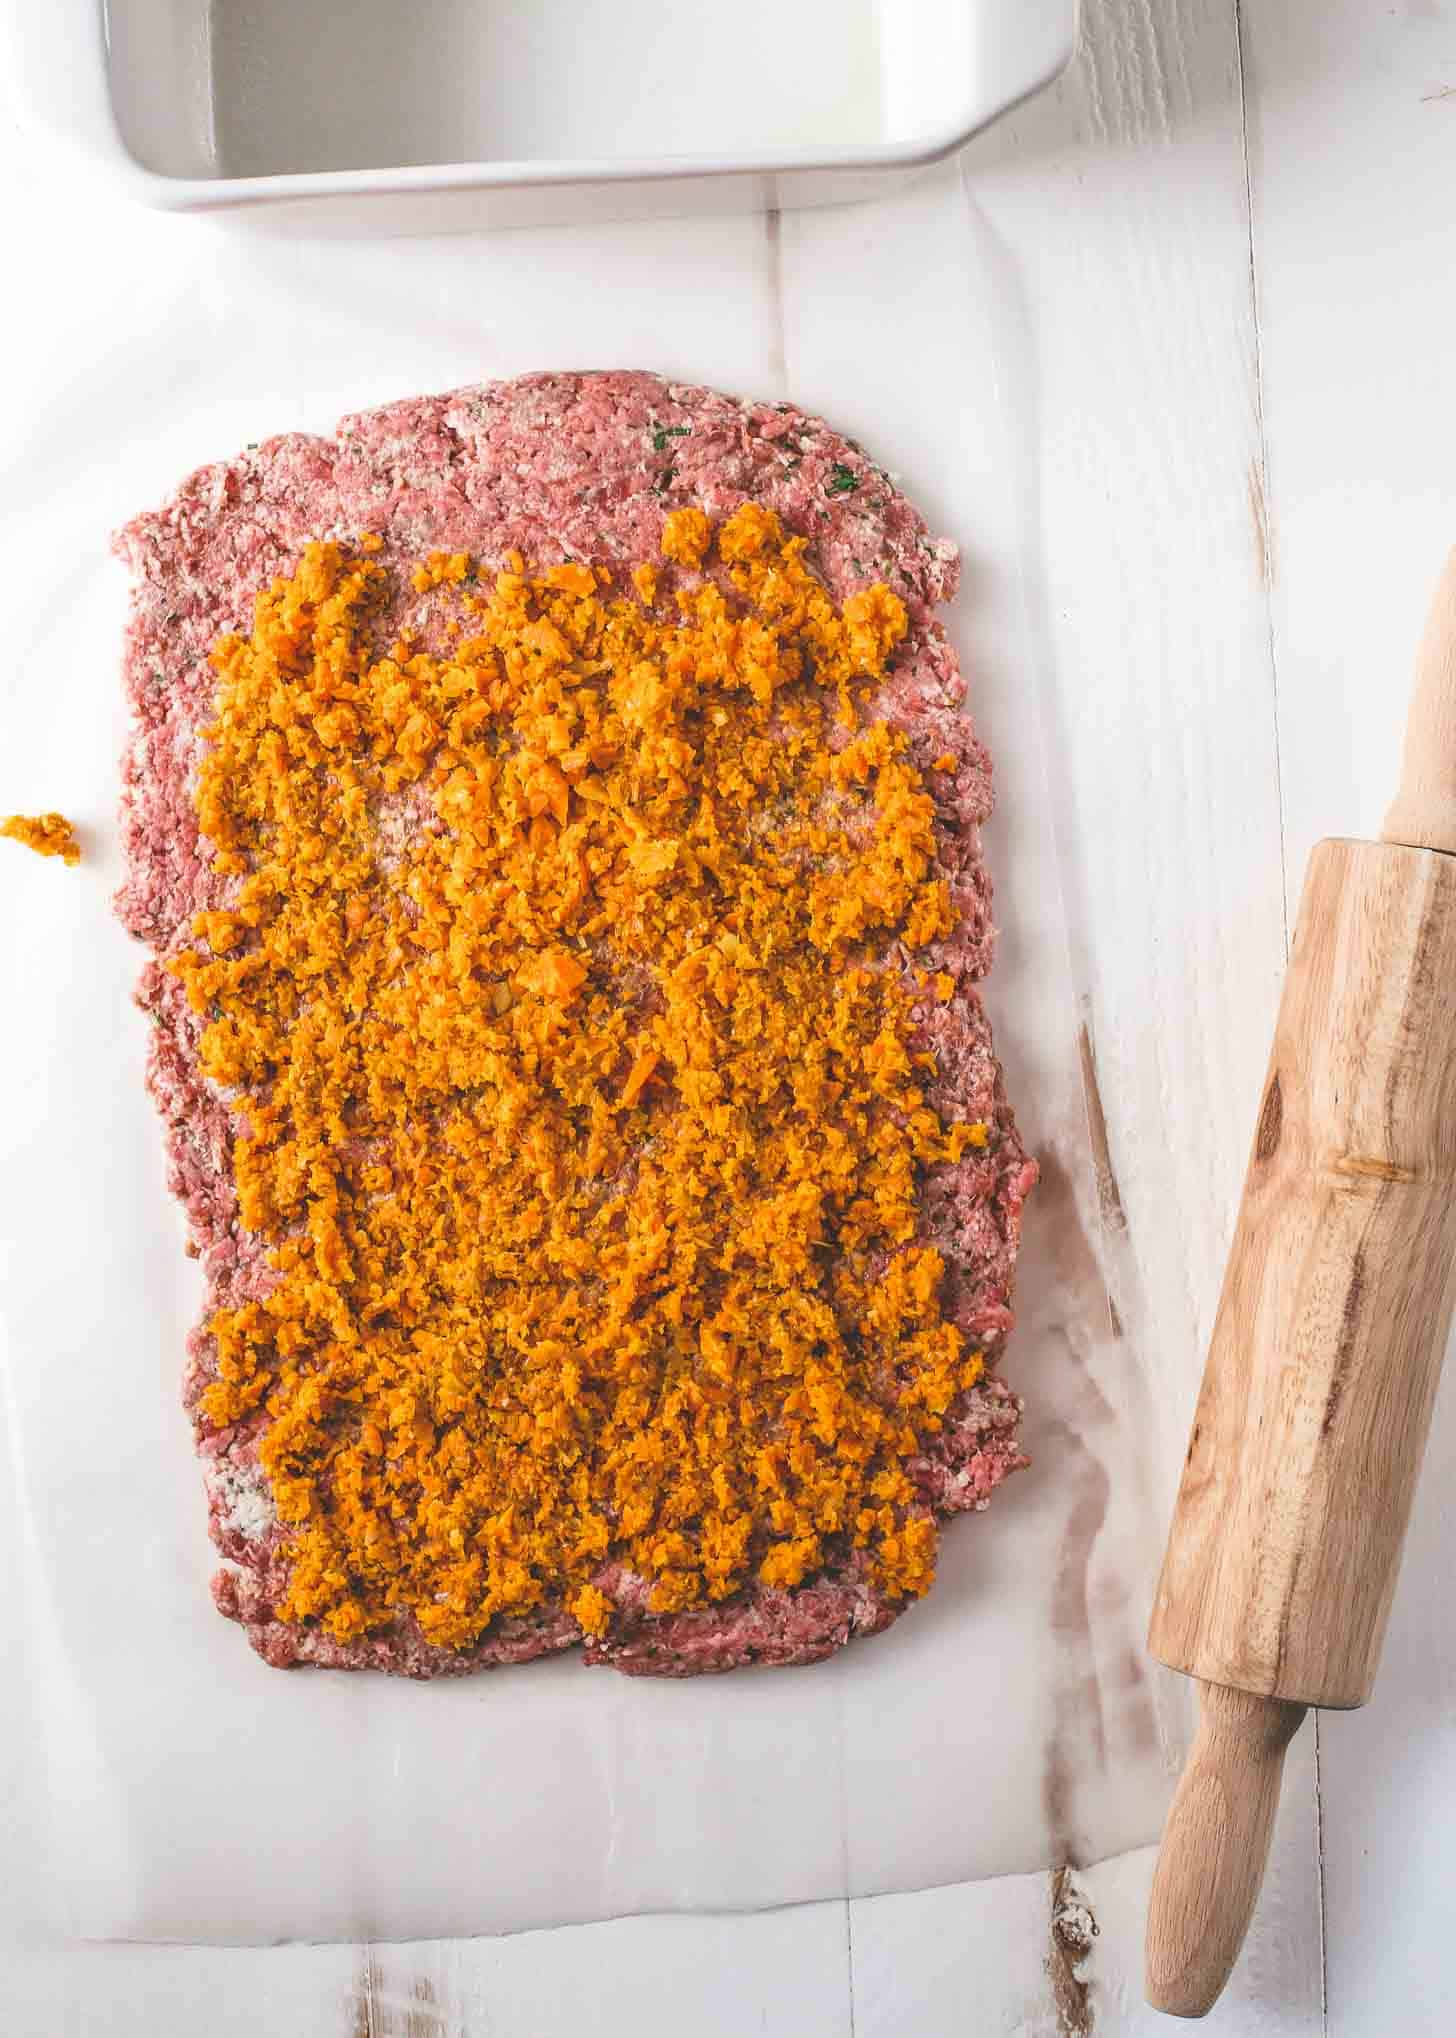 spreading carrot mixture over meatloaf